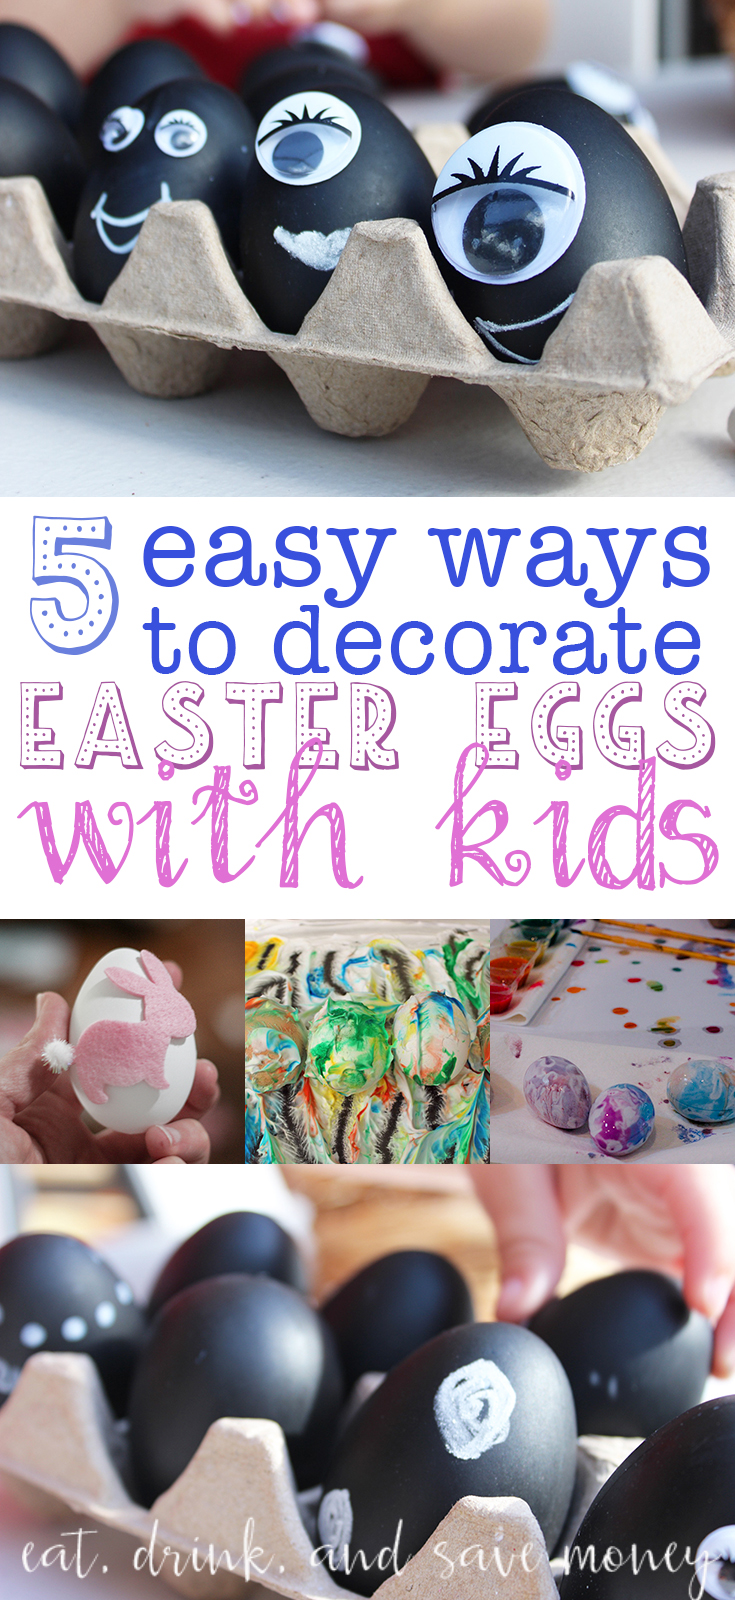 Looking for an alternative to dyeing Easter eggs with kids? Check out these 5 Easy ways to decorate Easter eggs with kids. www.eatdrinkandsavemoney.com